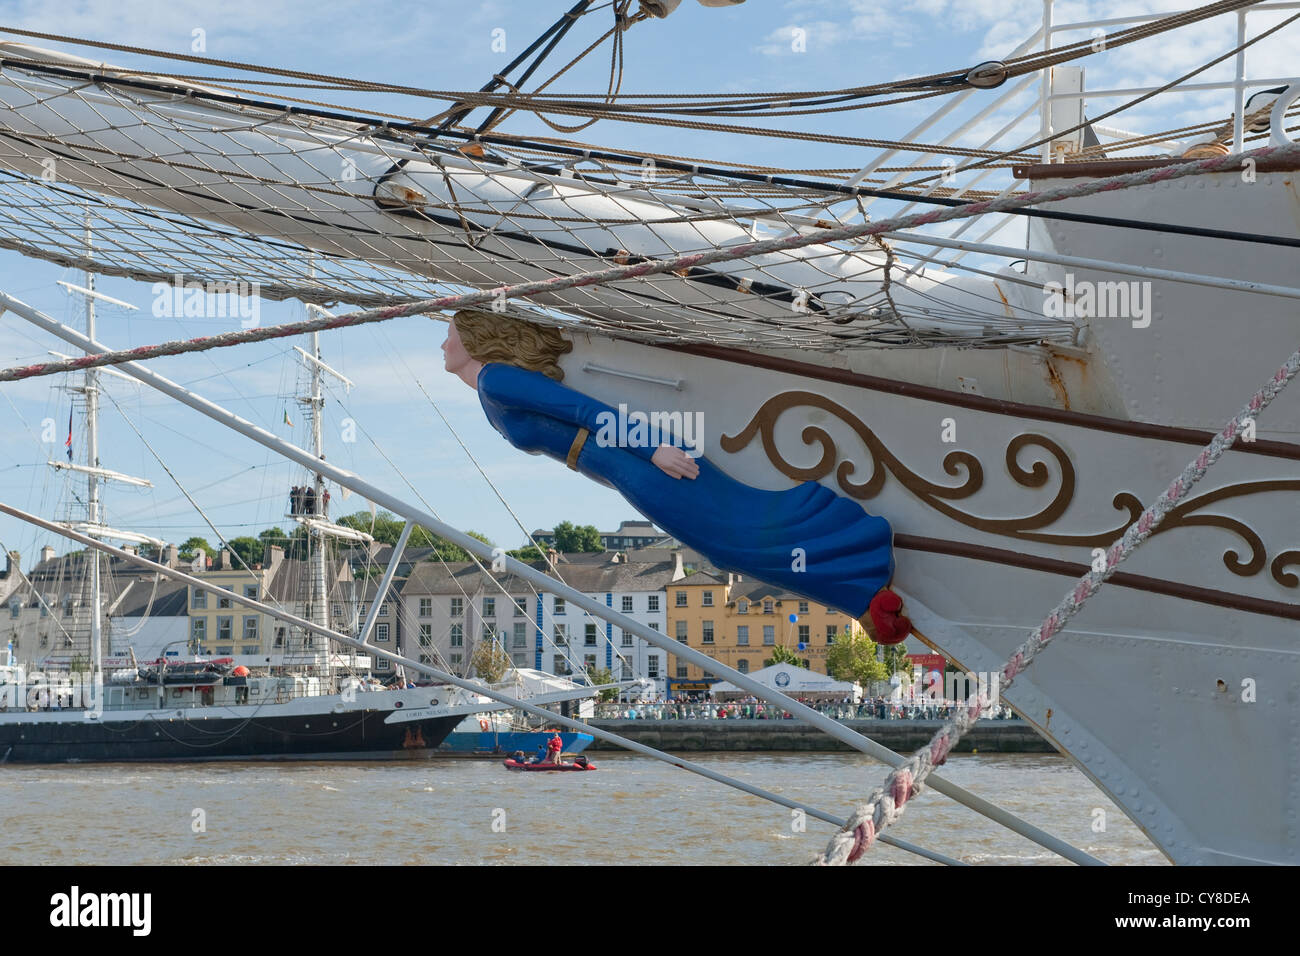 Figurehead on bow of tall ship - Stock Image